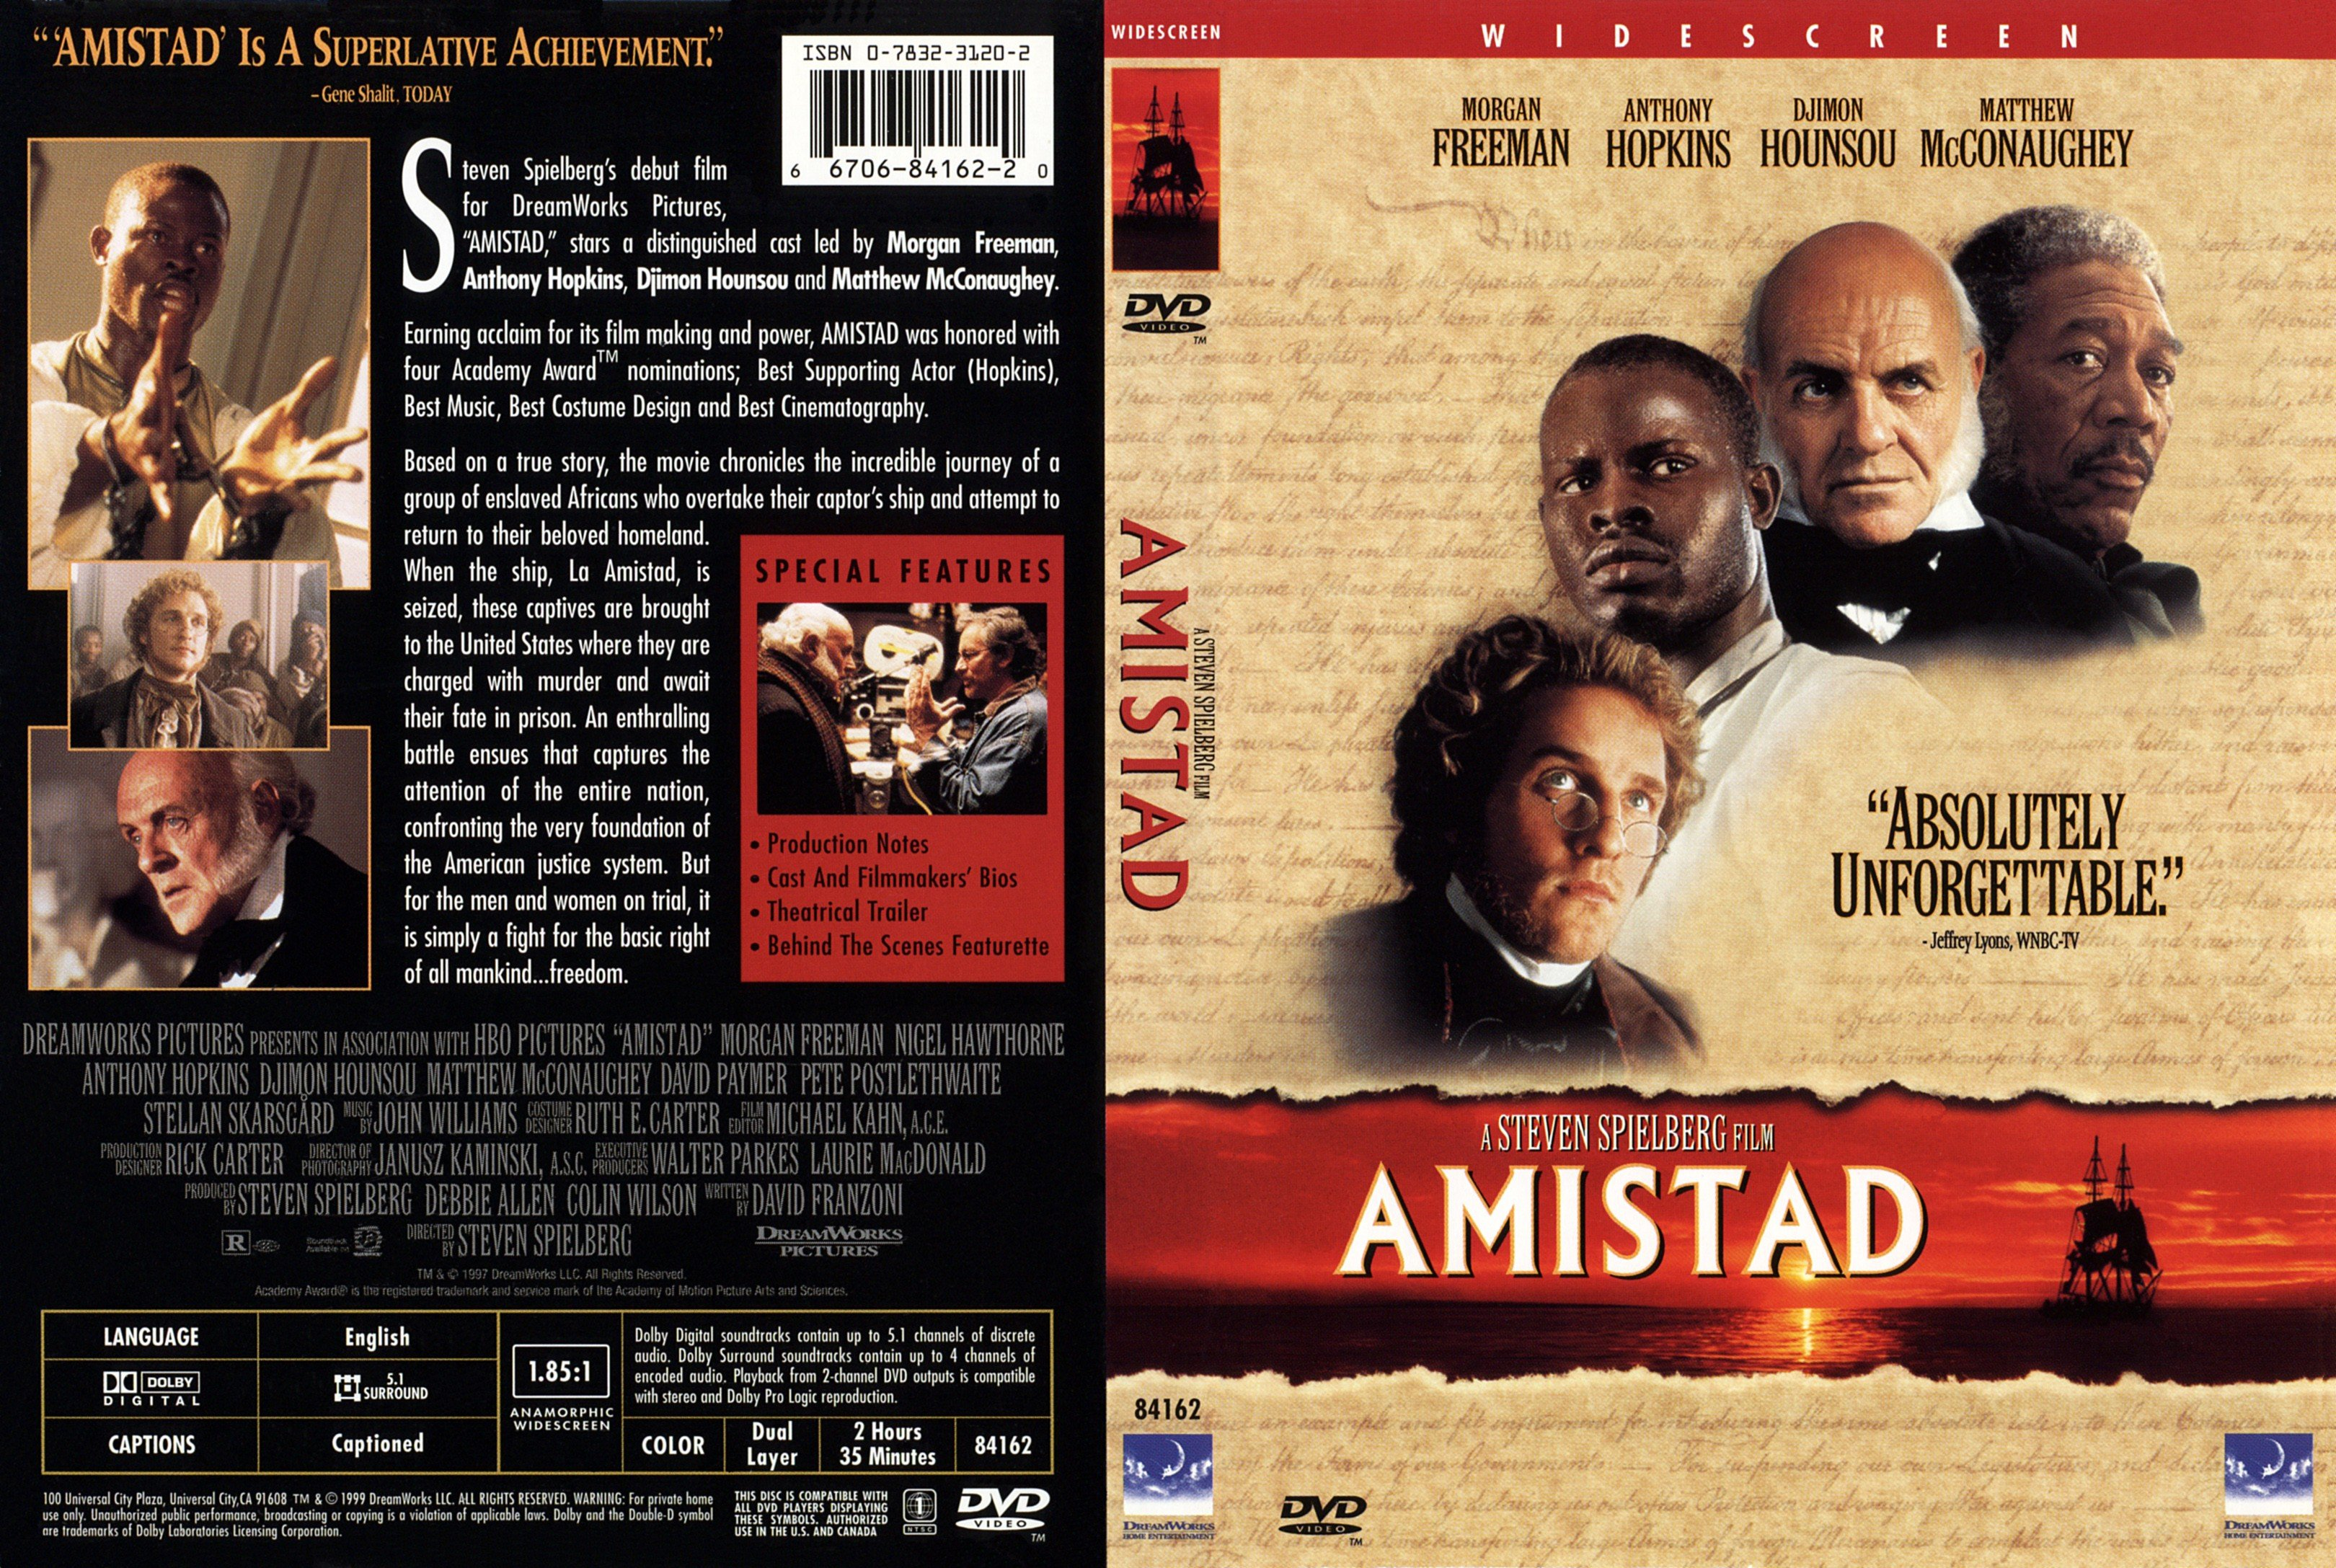 an analysis of the 4 star film amistad